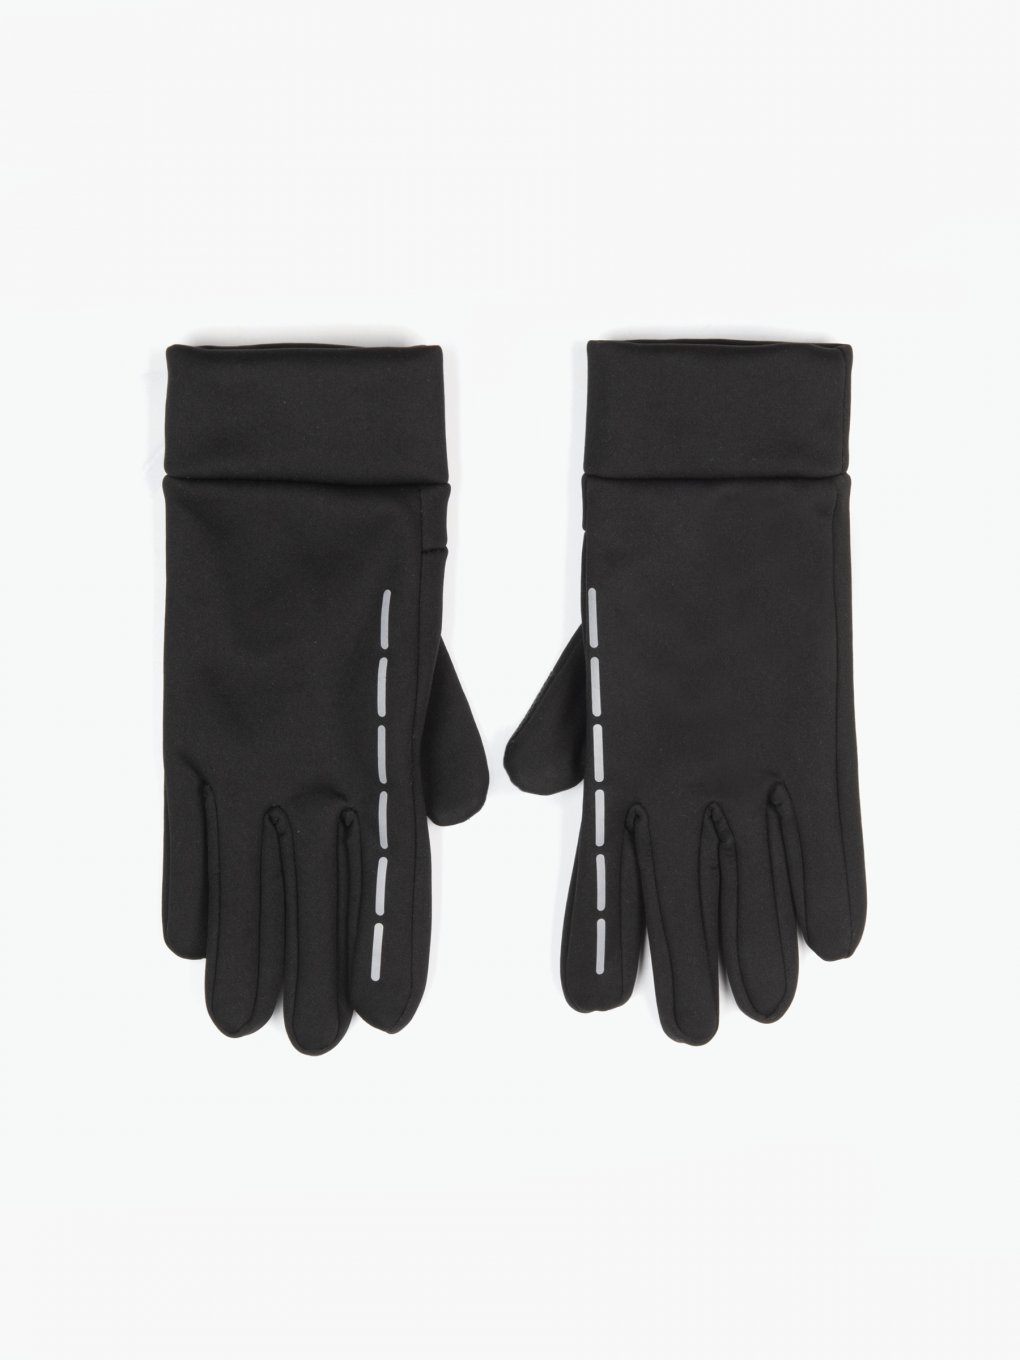 Touch screen gloves with reflective stripes